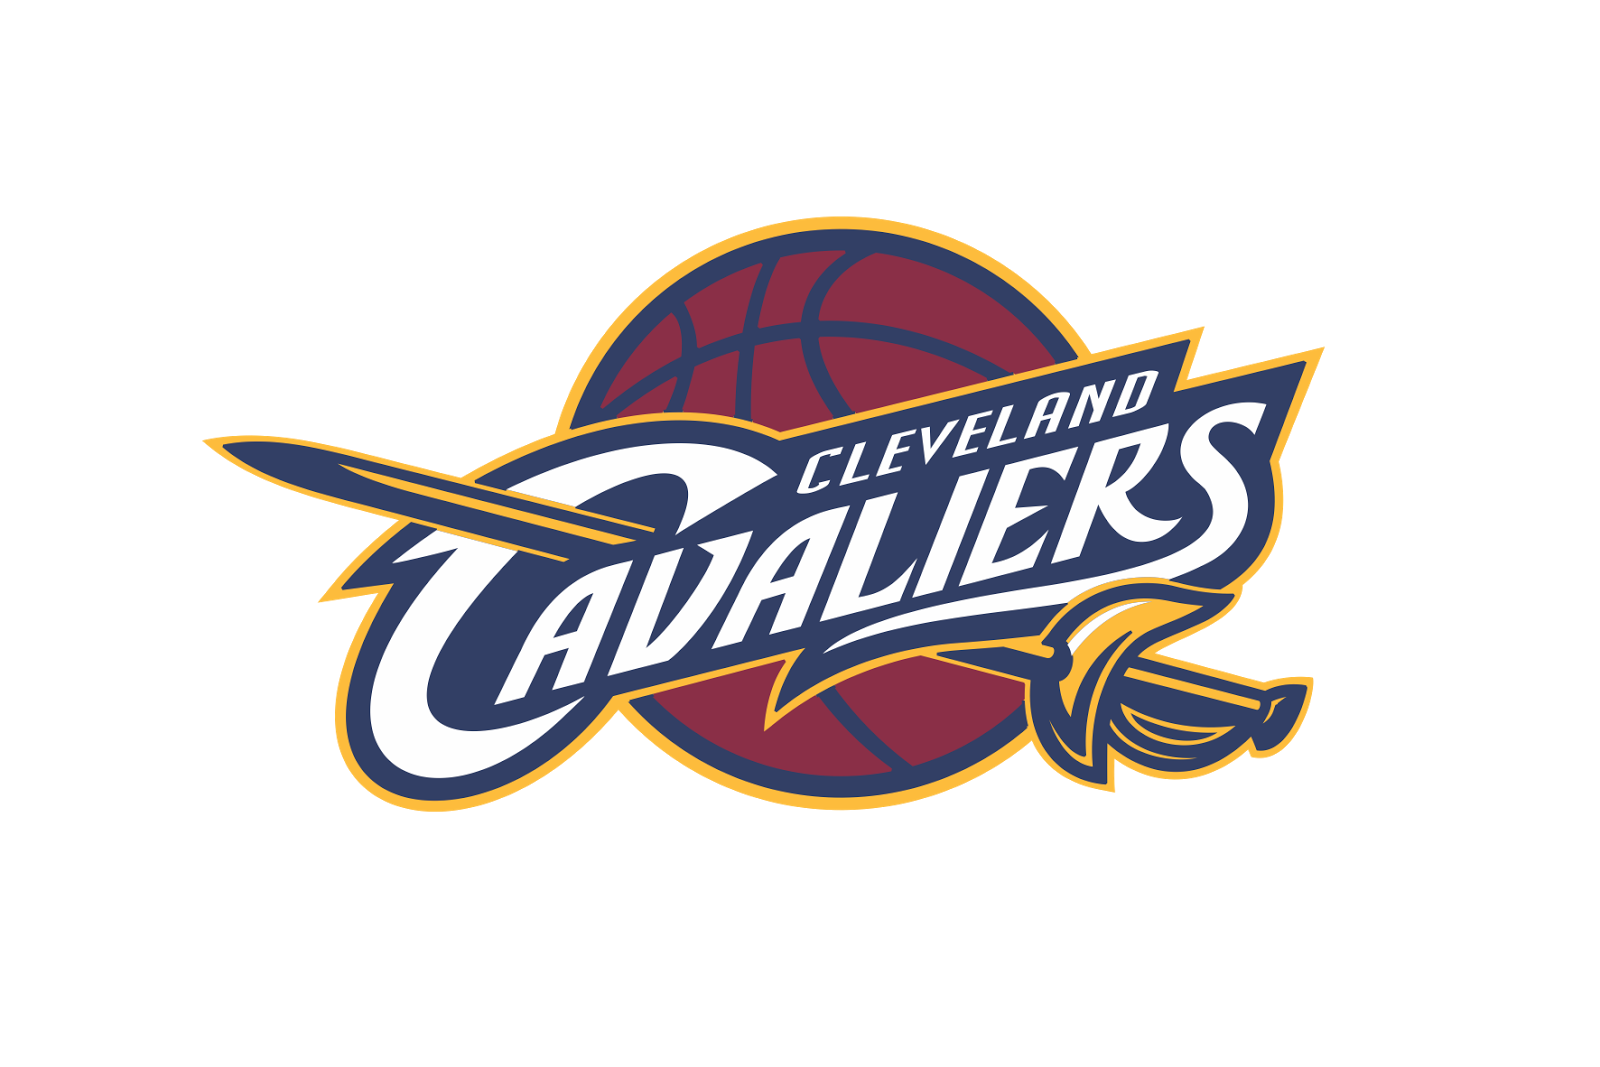 The Cleveland Cavaliers have secured their return to the